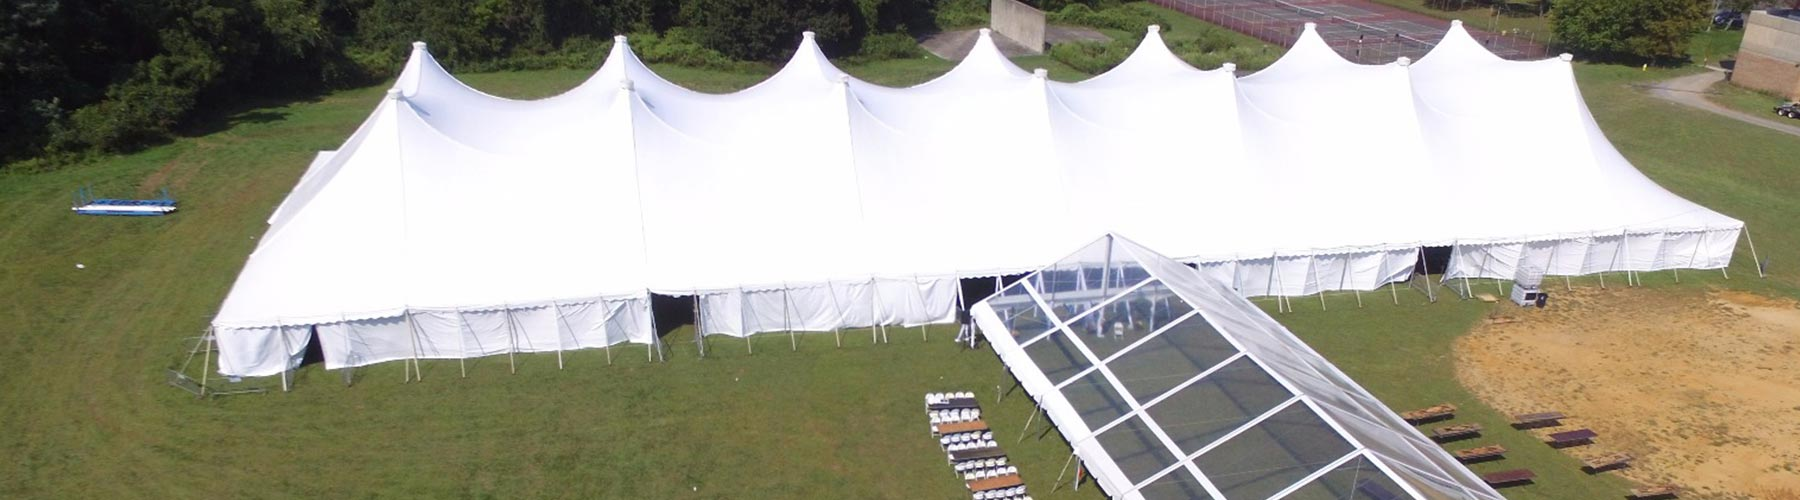 Wedding Tent Renatls Abc Fabulous Events Party Rentals